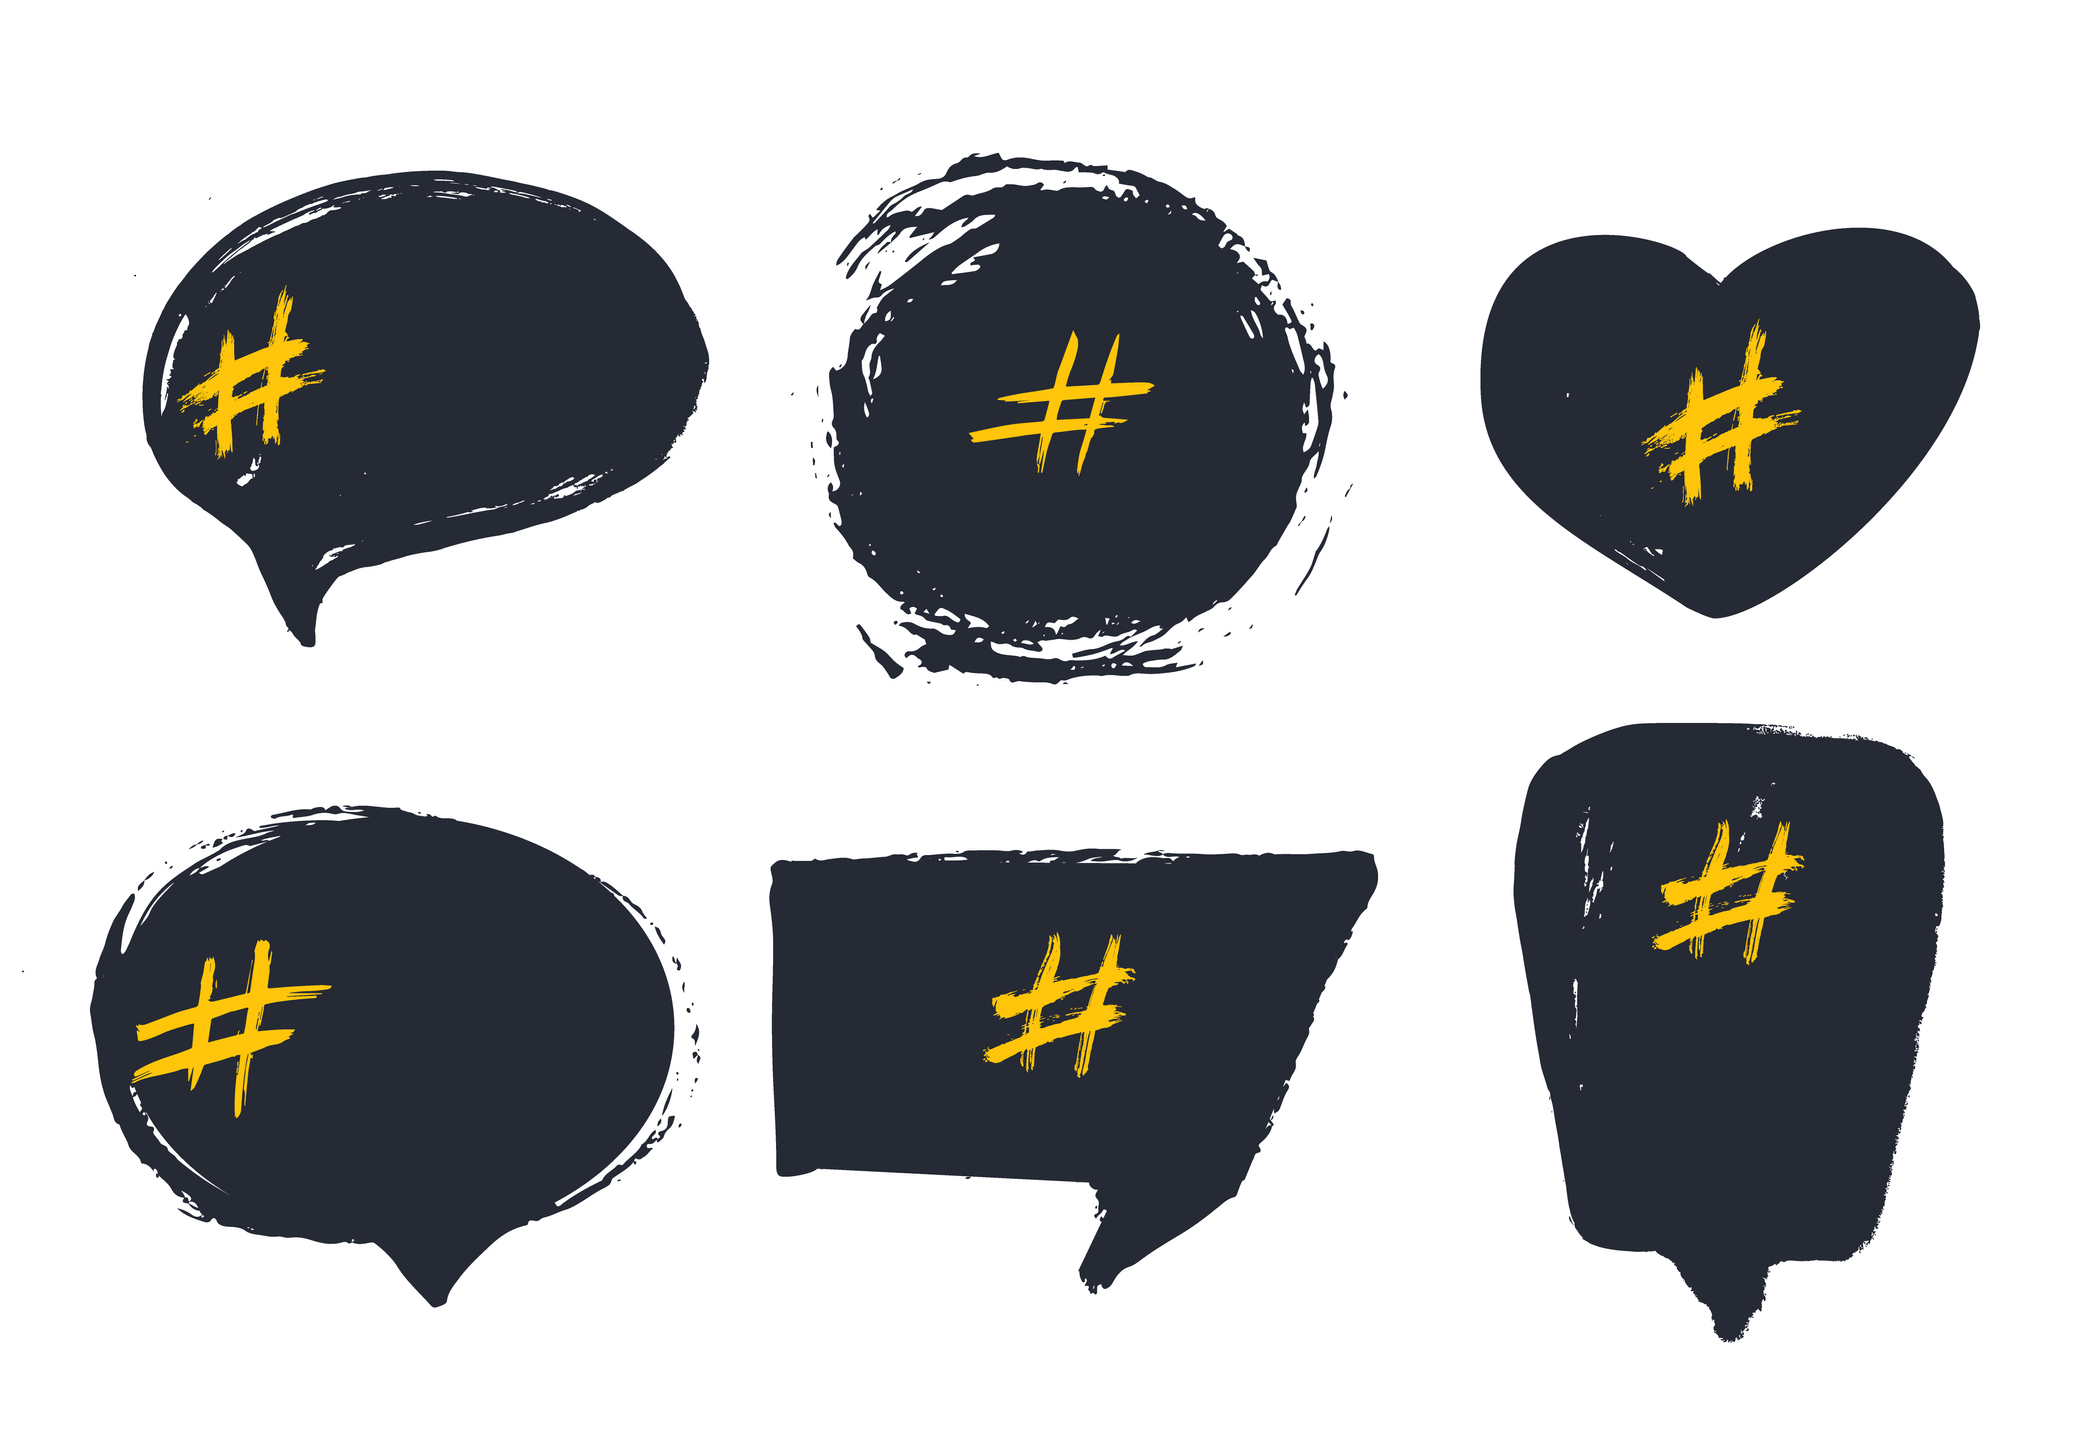 images of speech bubbles with hashtag icon